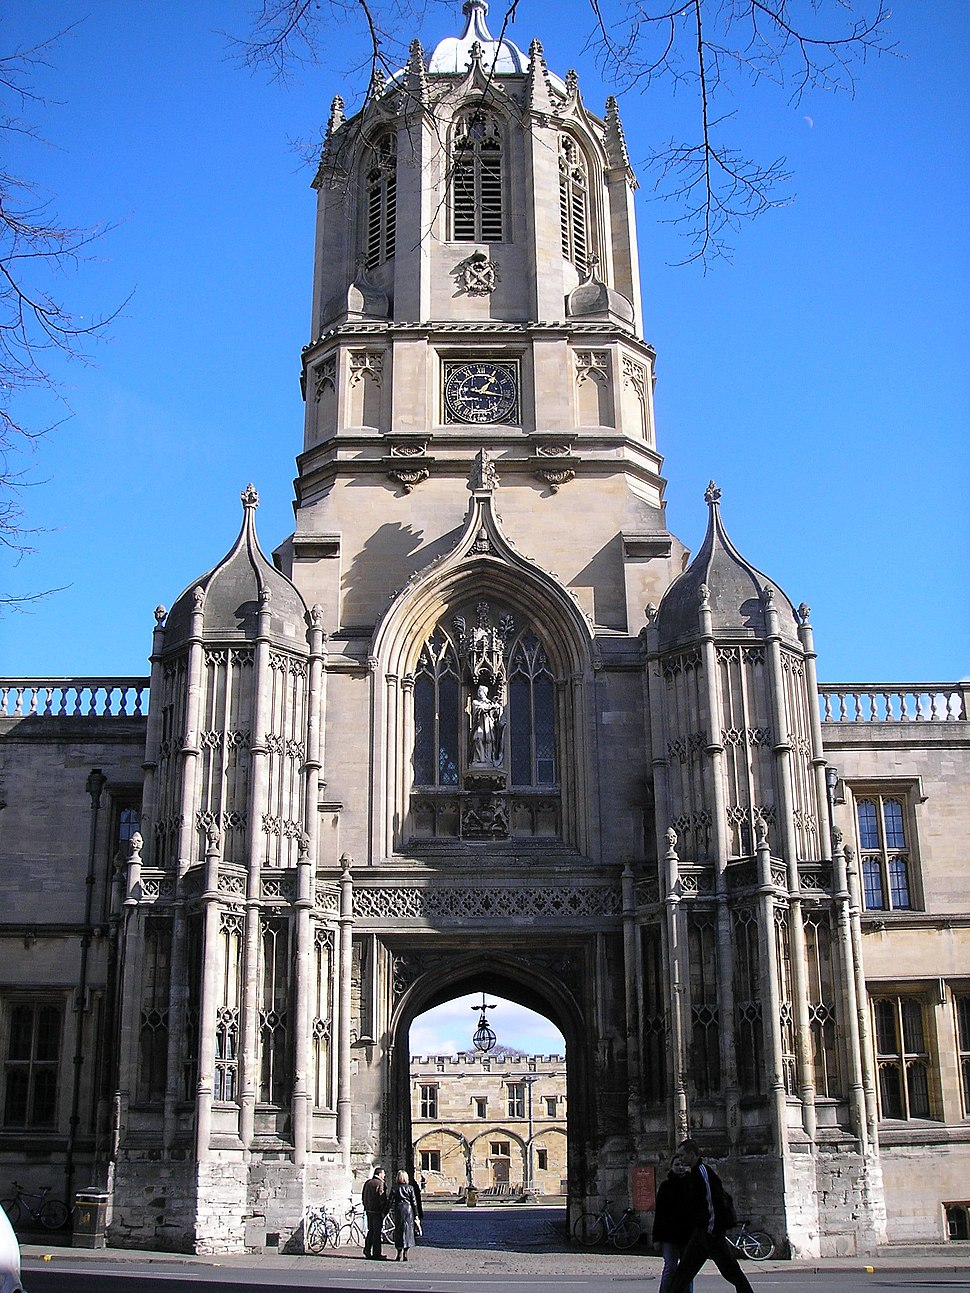 Tom Tower (Oxford, England)